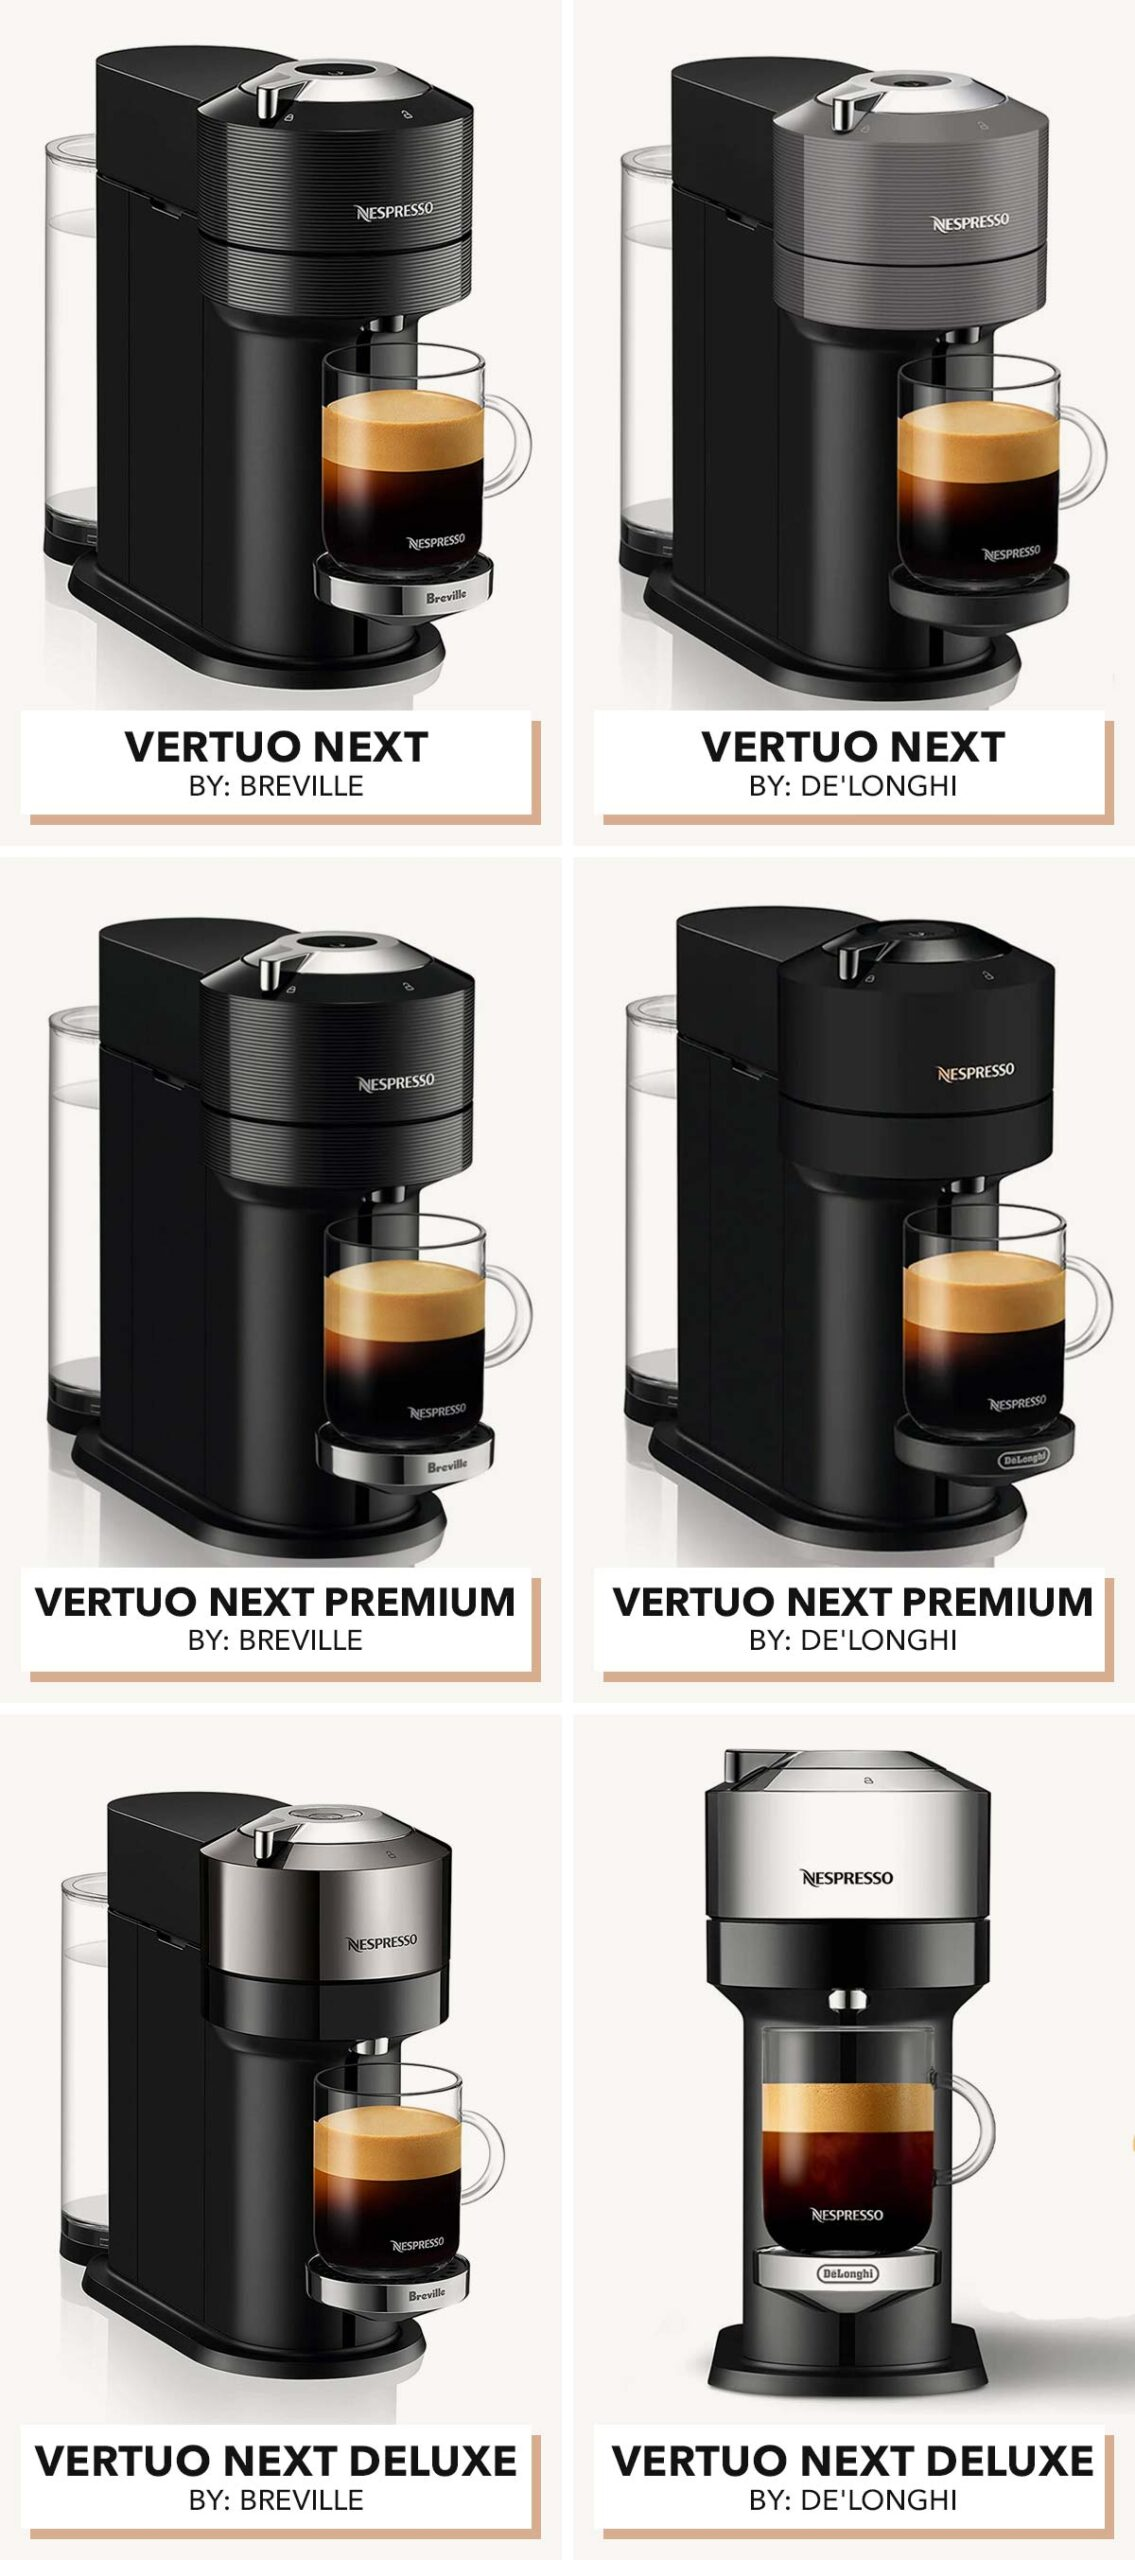 Six photo collage of the six different Nespresso models of the Vertuo Next machine line.